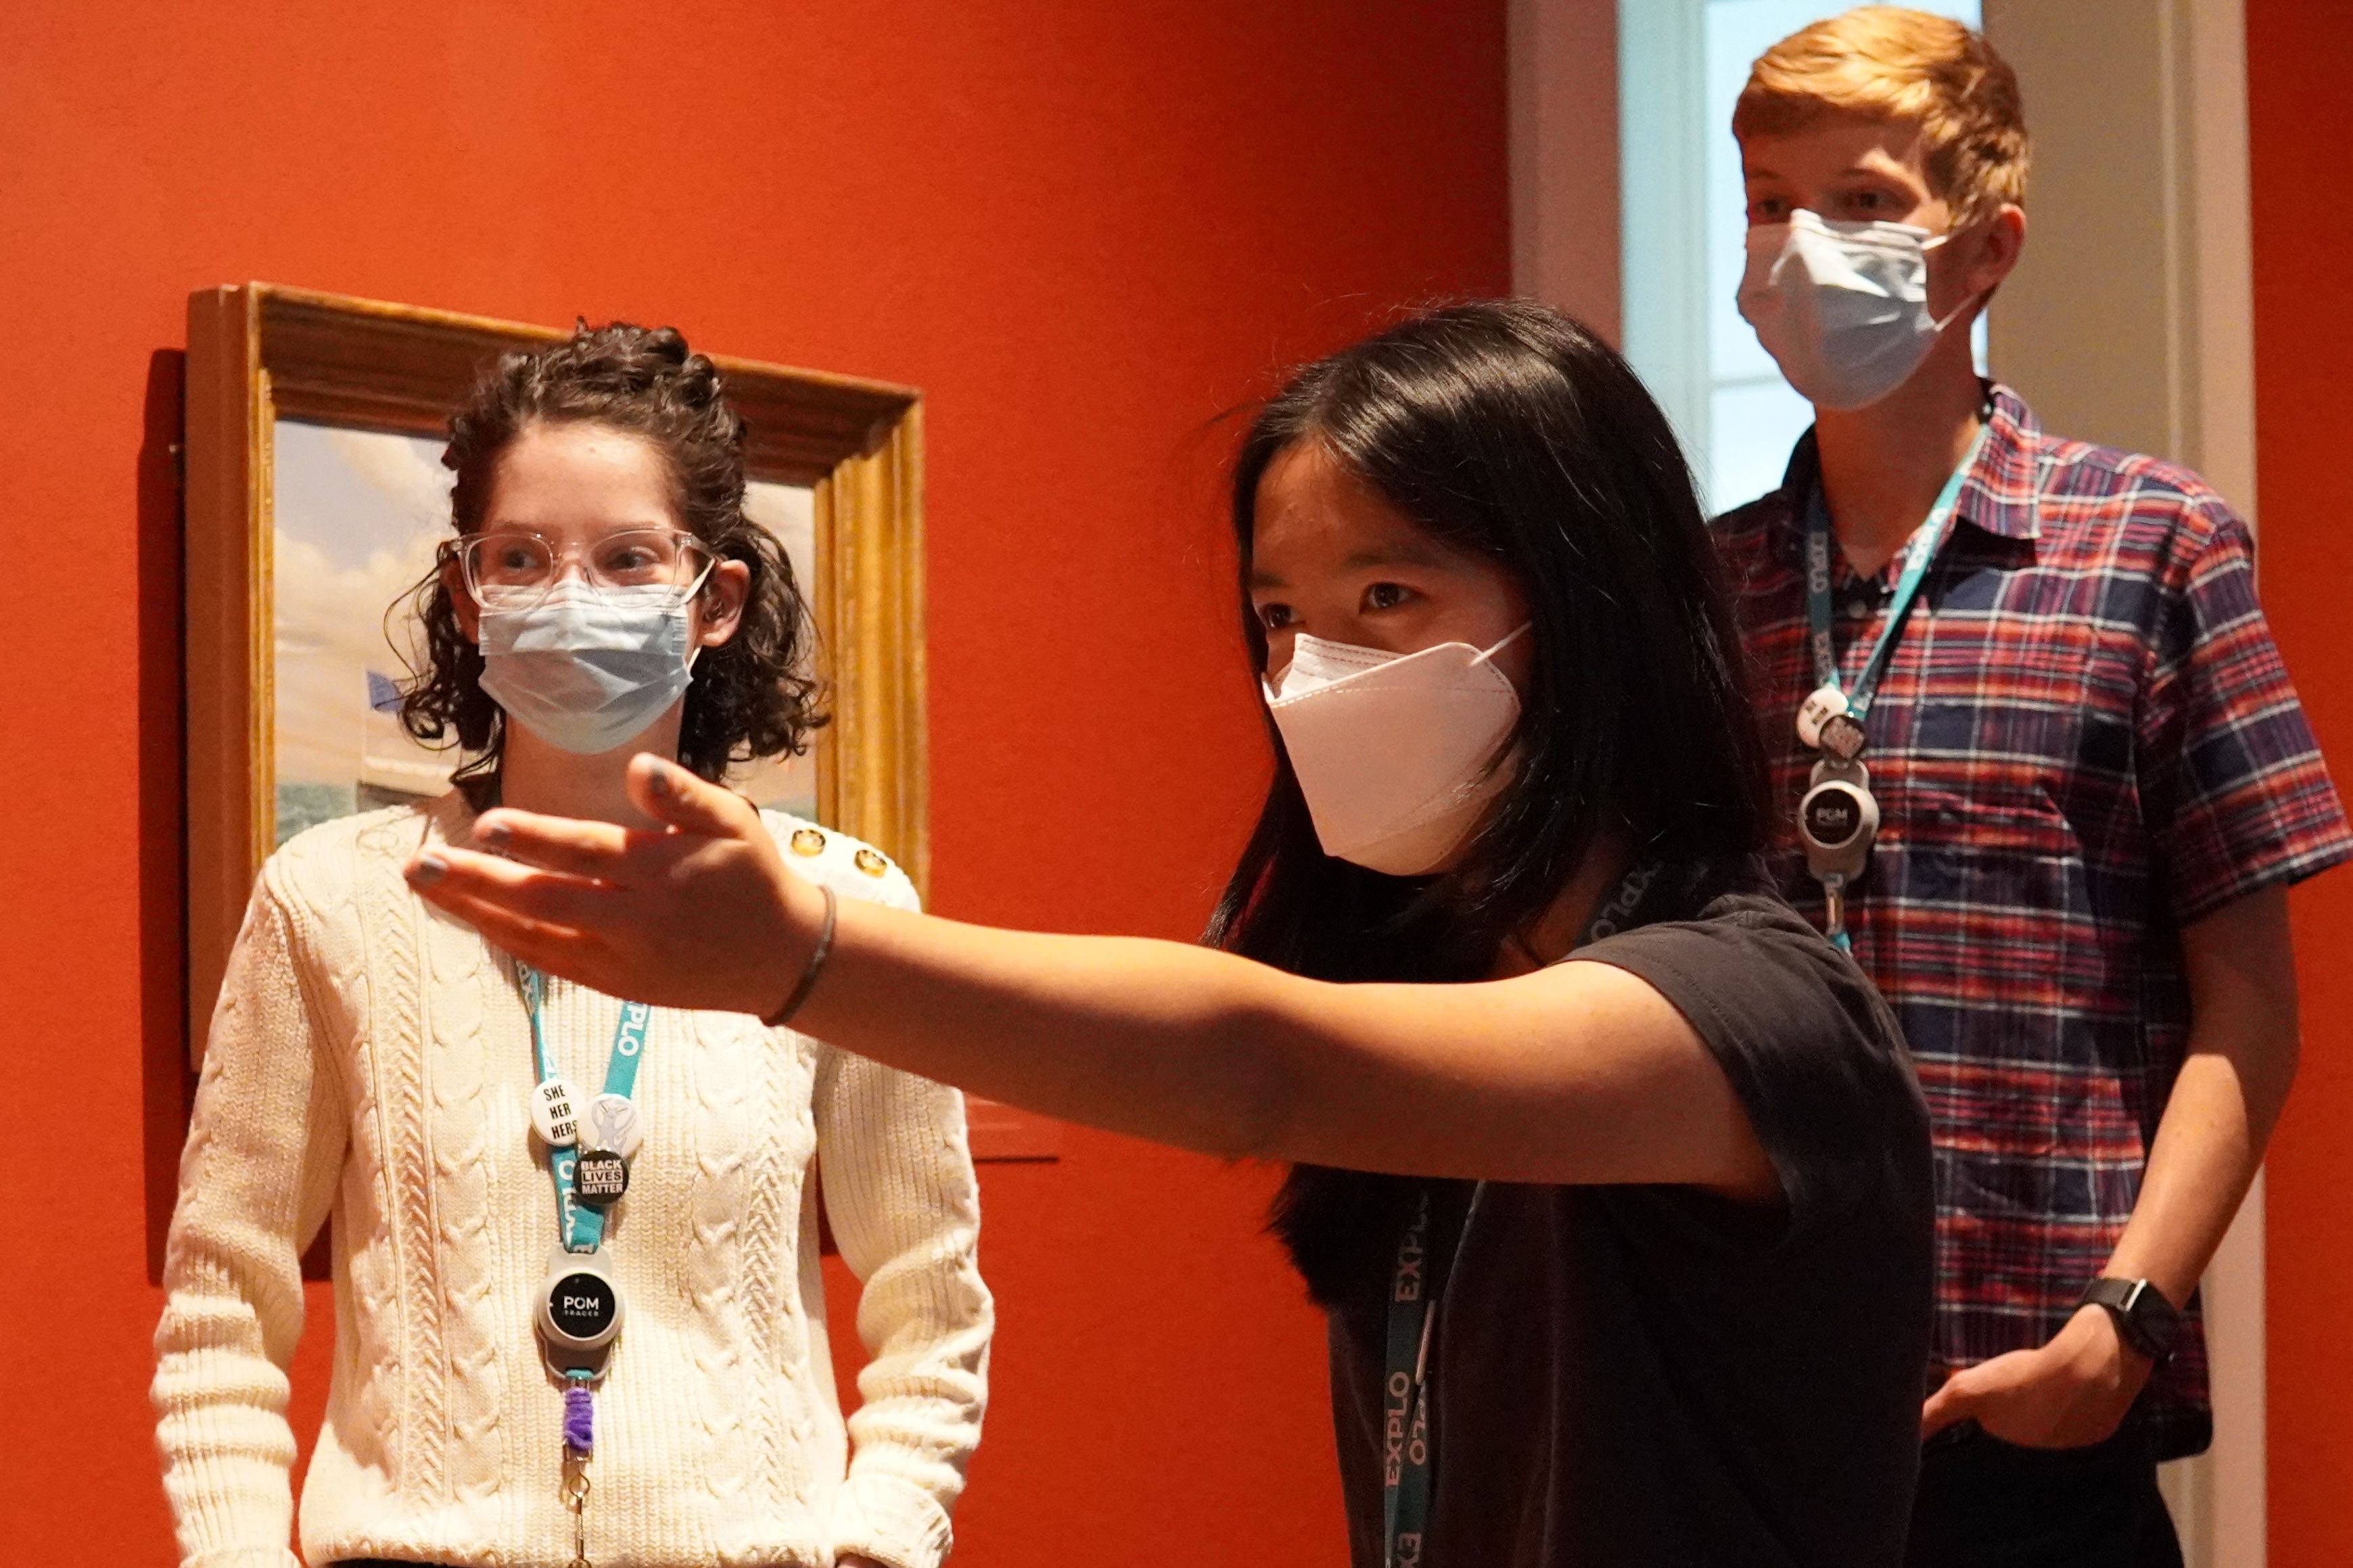 Medical Rotations: Observation Skills With Art